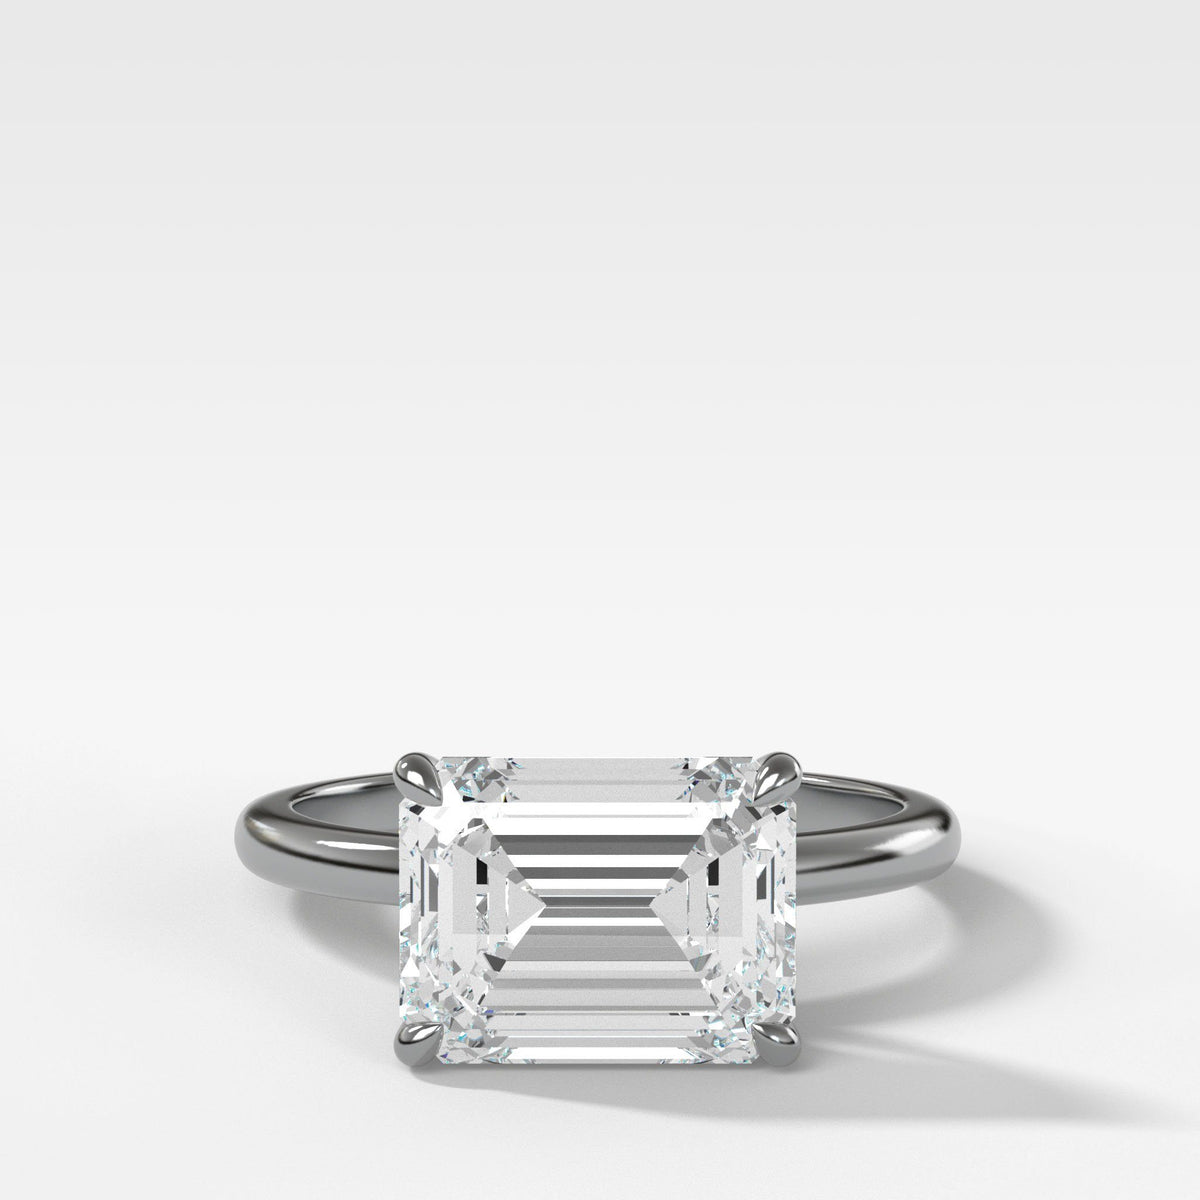 Crescent Solitaire With Emerald Cut (East West) in White Gold By Good Stone